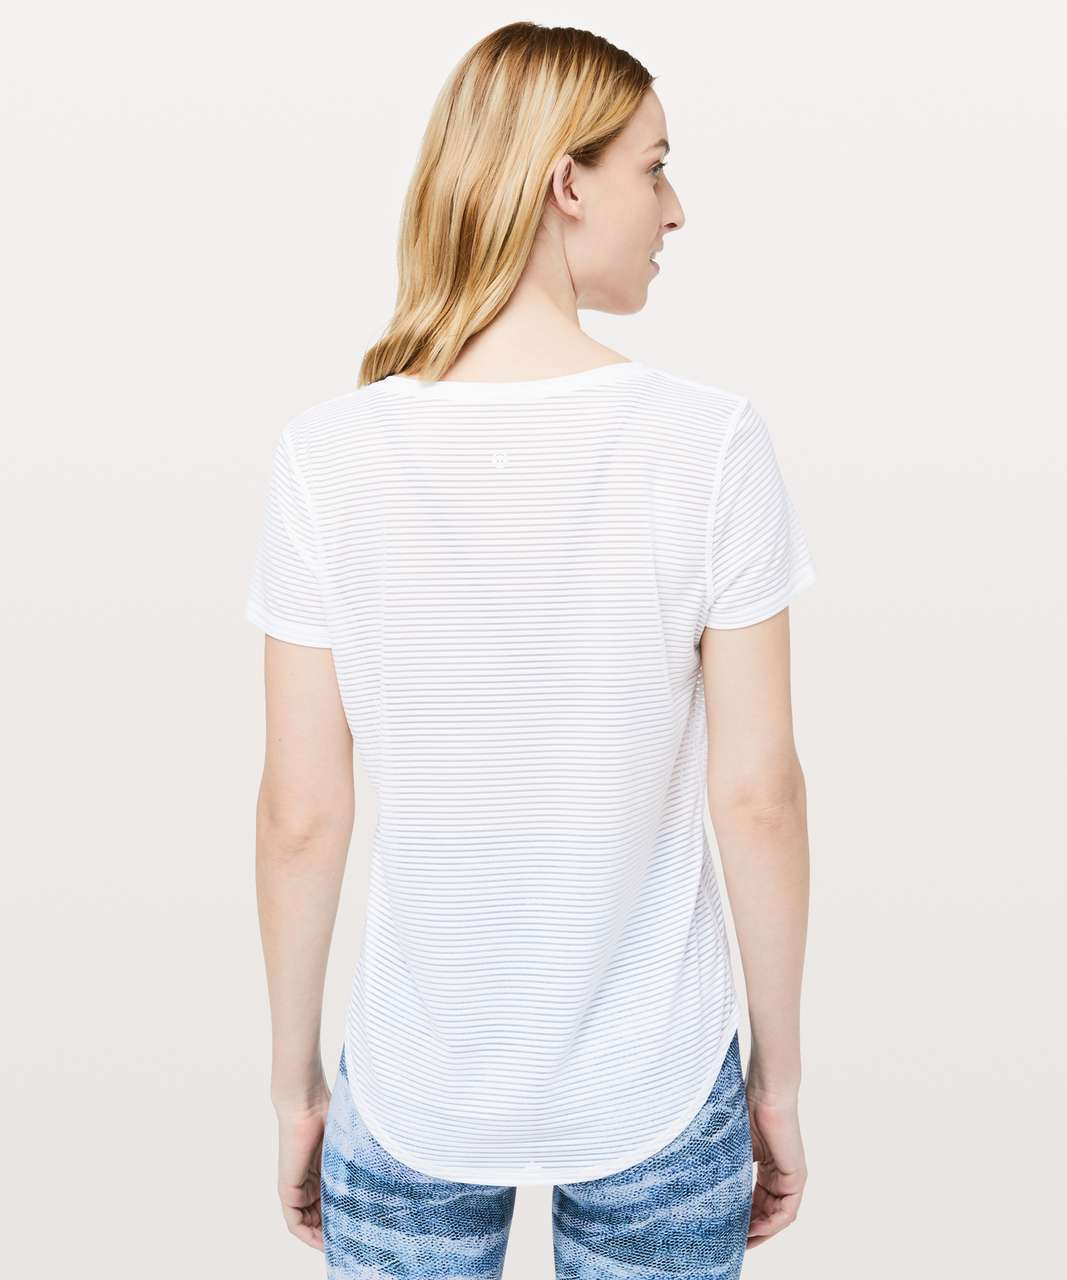 Lululemon All Love Crew *Striped Mesh - White (First Release)